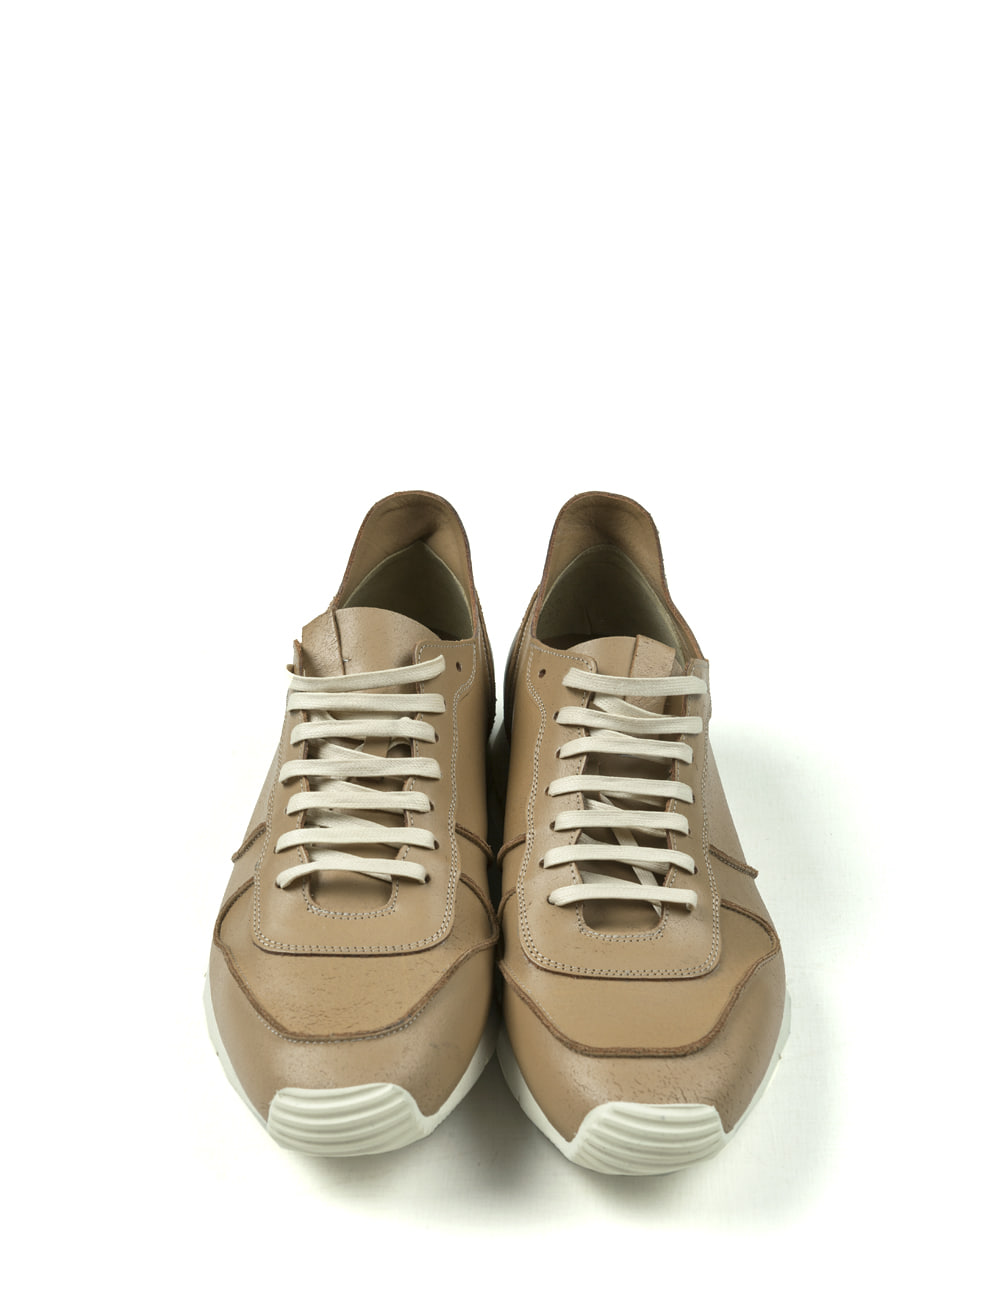 [handmade shoes]  2018 스니커즈 (beige)